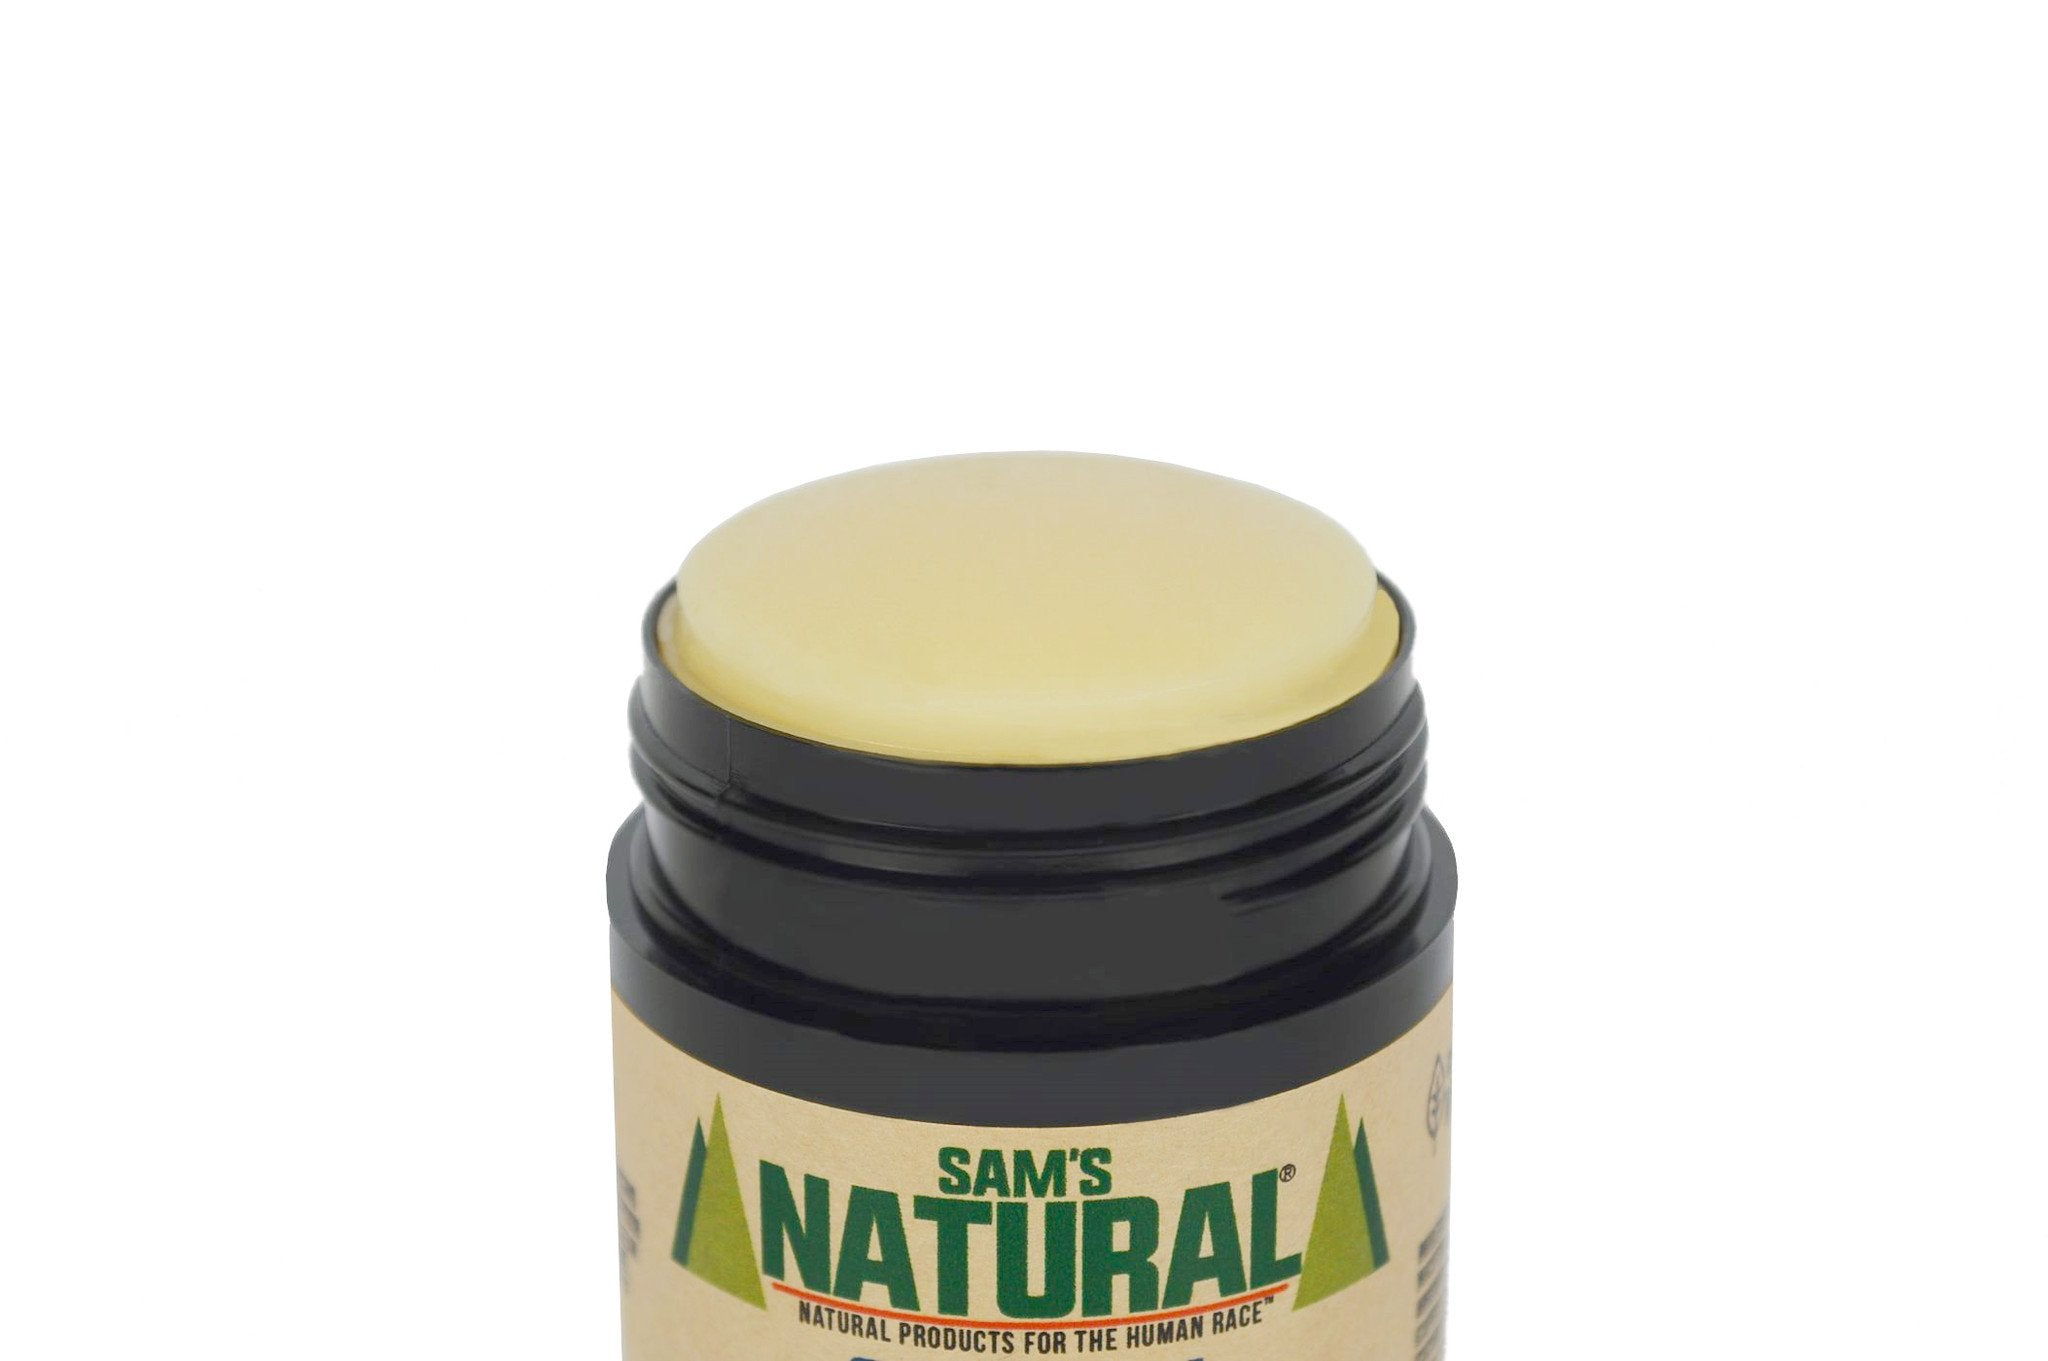 How To Make All Natural Stick Deodorant